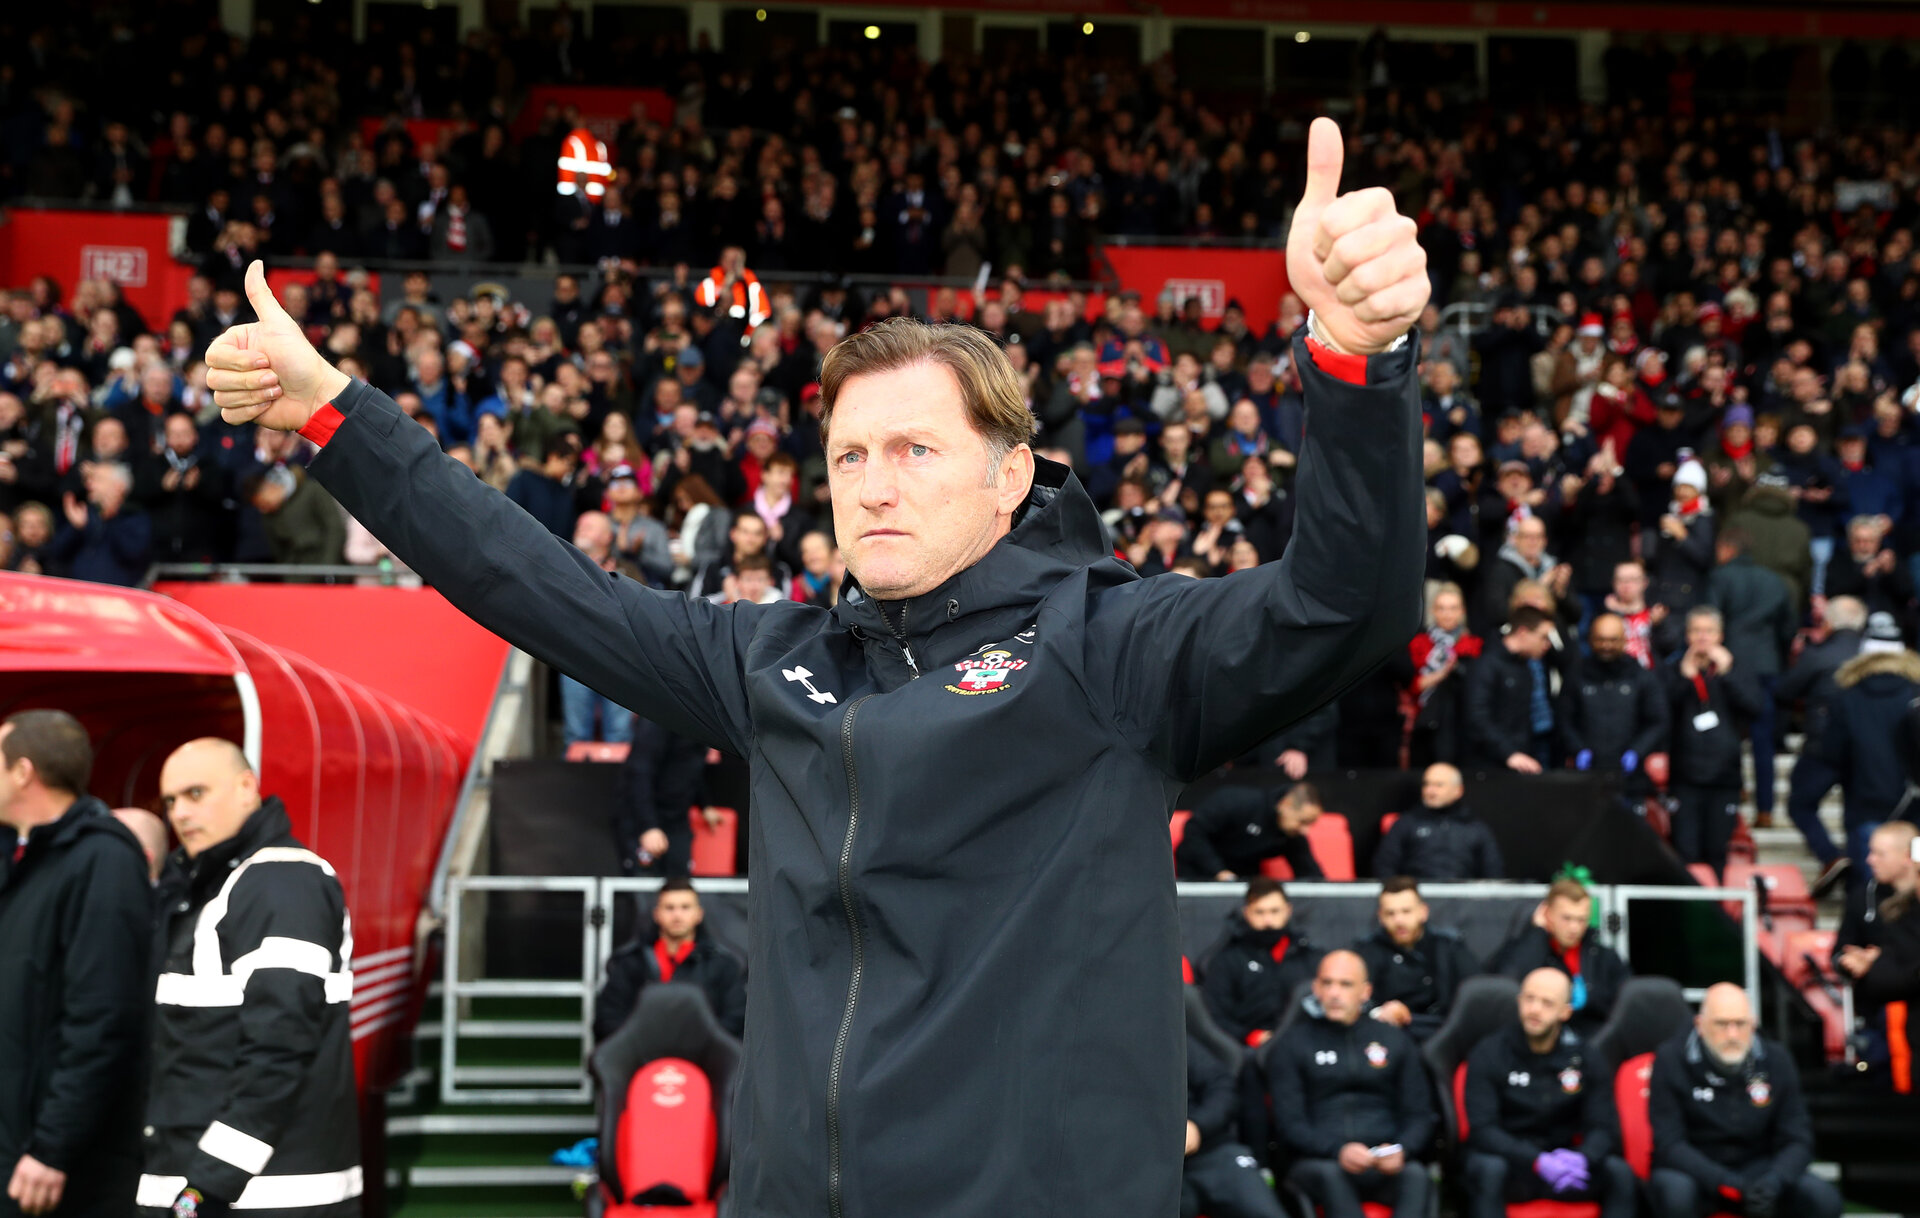 SOUTHAMPTON, ENGLAND - DECEMBER 16: Southampton manager Ralph Hasenhüttl during the Premier League match between Southampton FC and Arsenal FC at St Mary's Stadium on December 15, 2018 in Southampton, United Kingdom. (Photo by Matt Watson/Southampton FC via Getty Images)